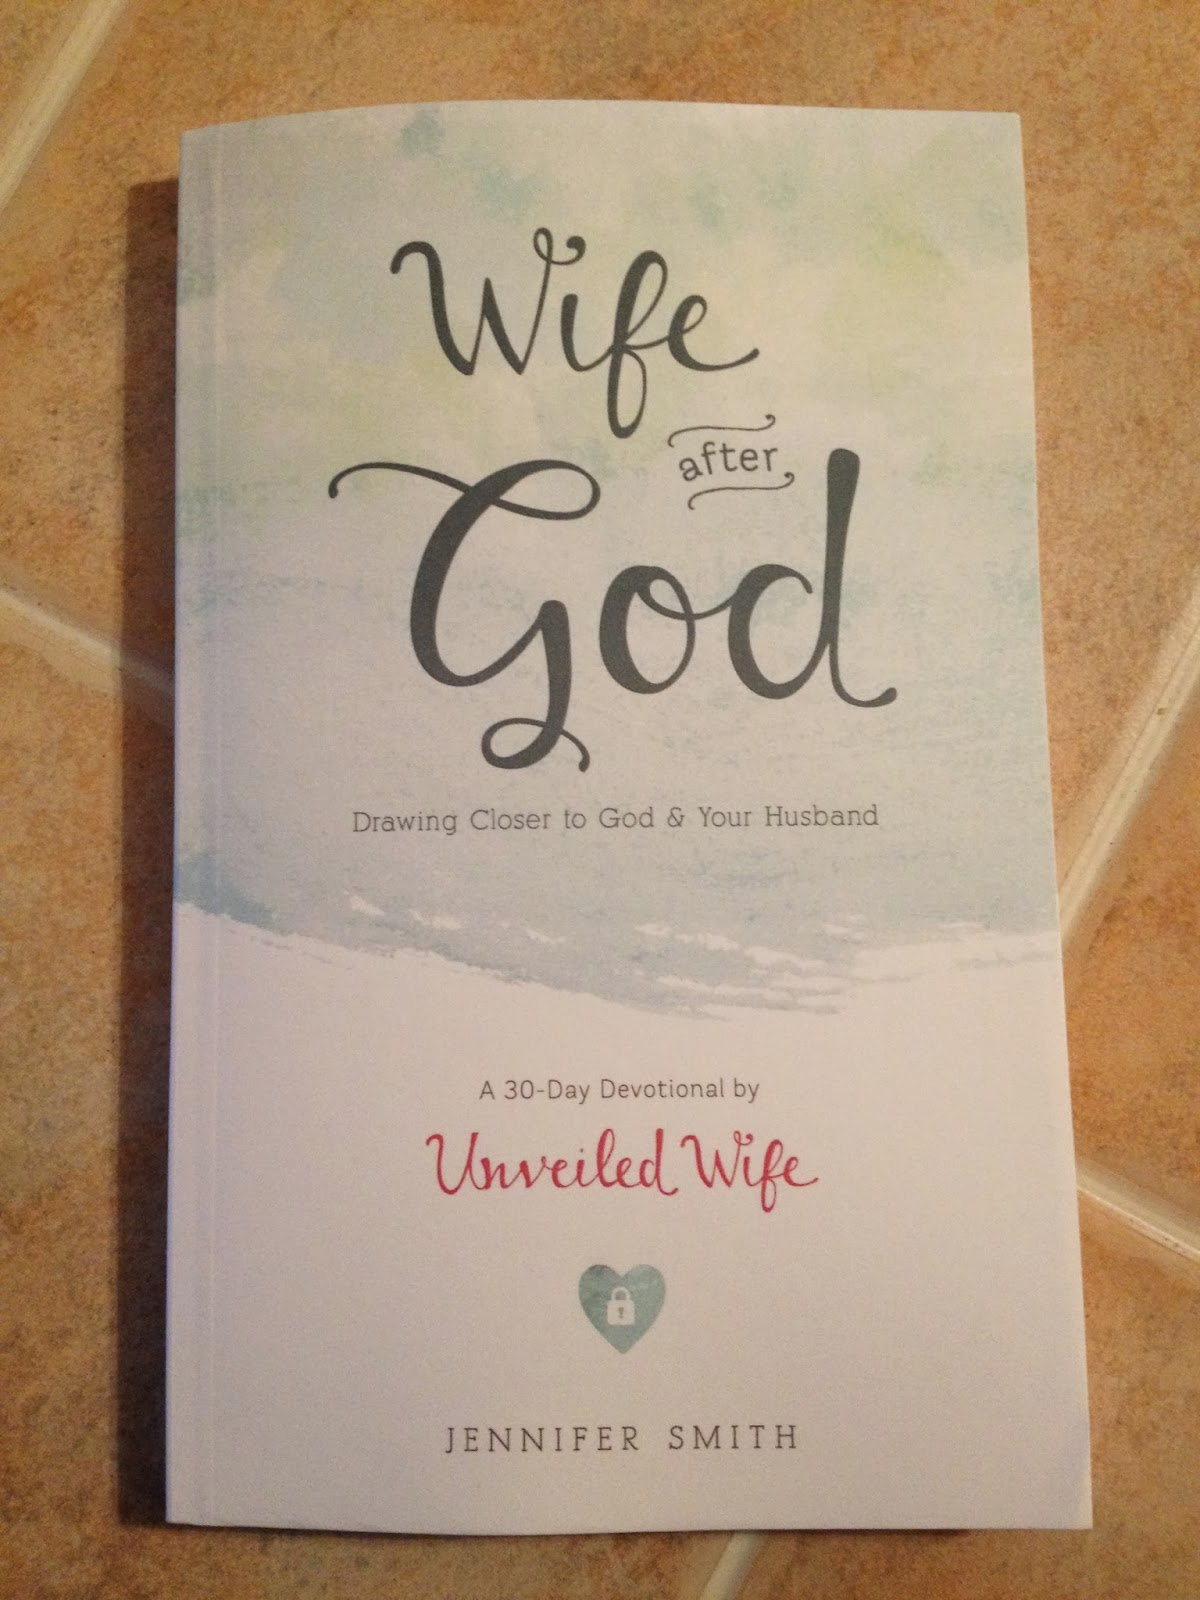 http://unveiledwife.com/wife-after-god/